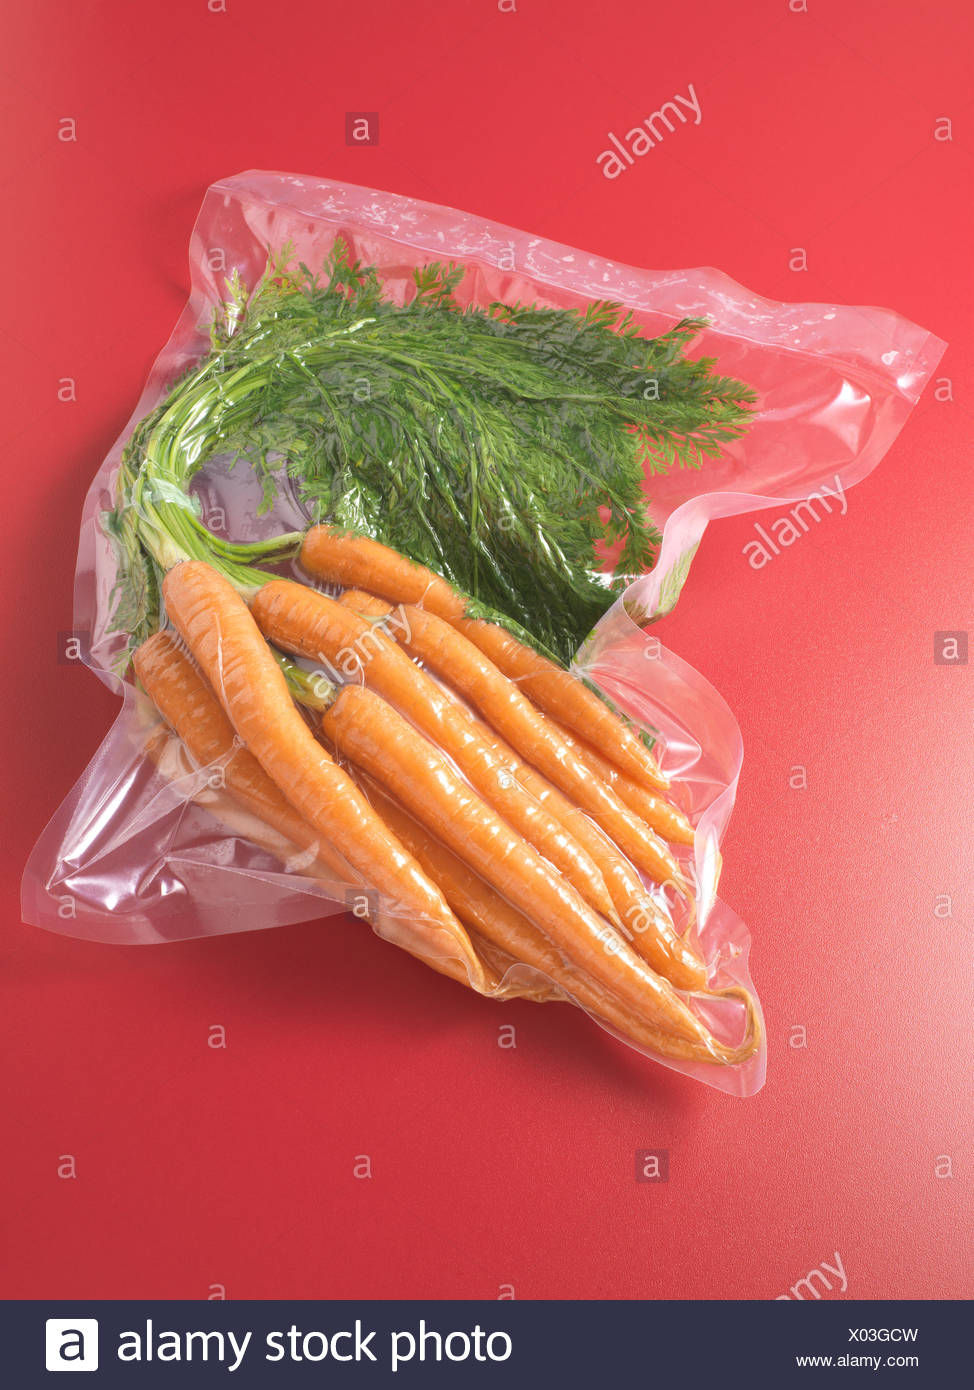 Vacuum packed carrots - Stock Image